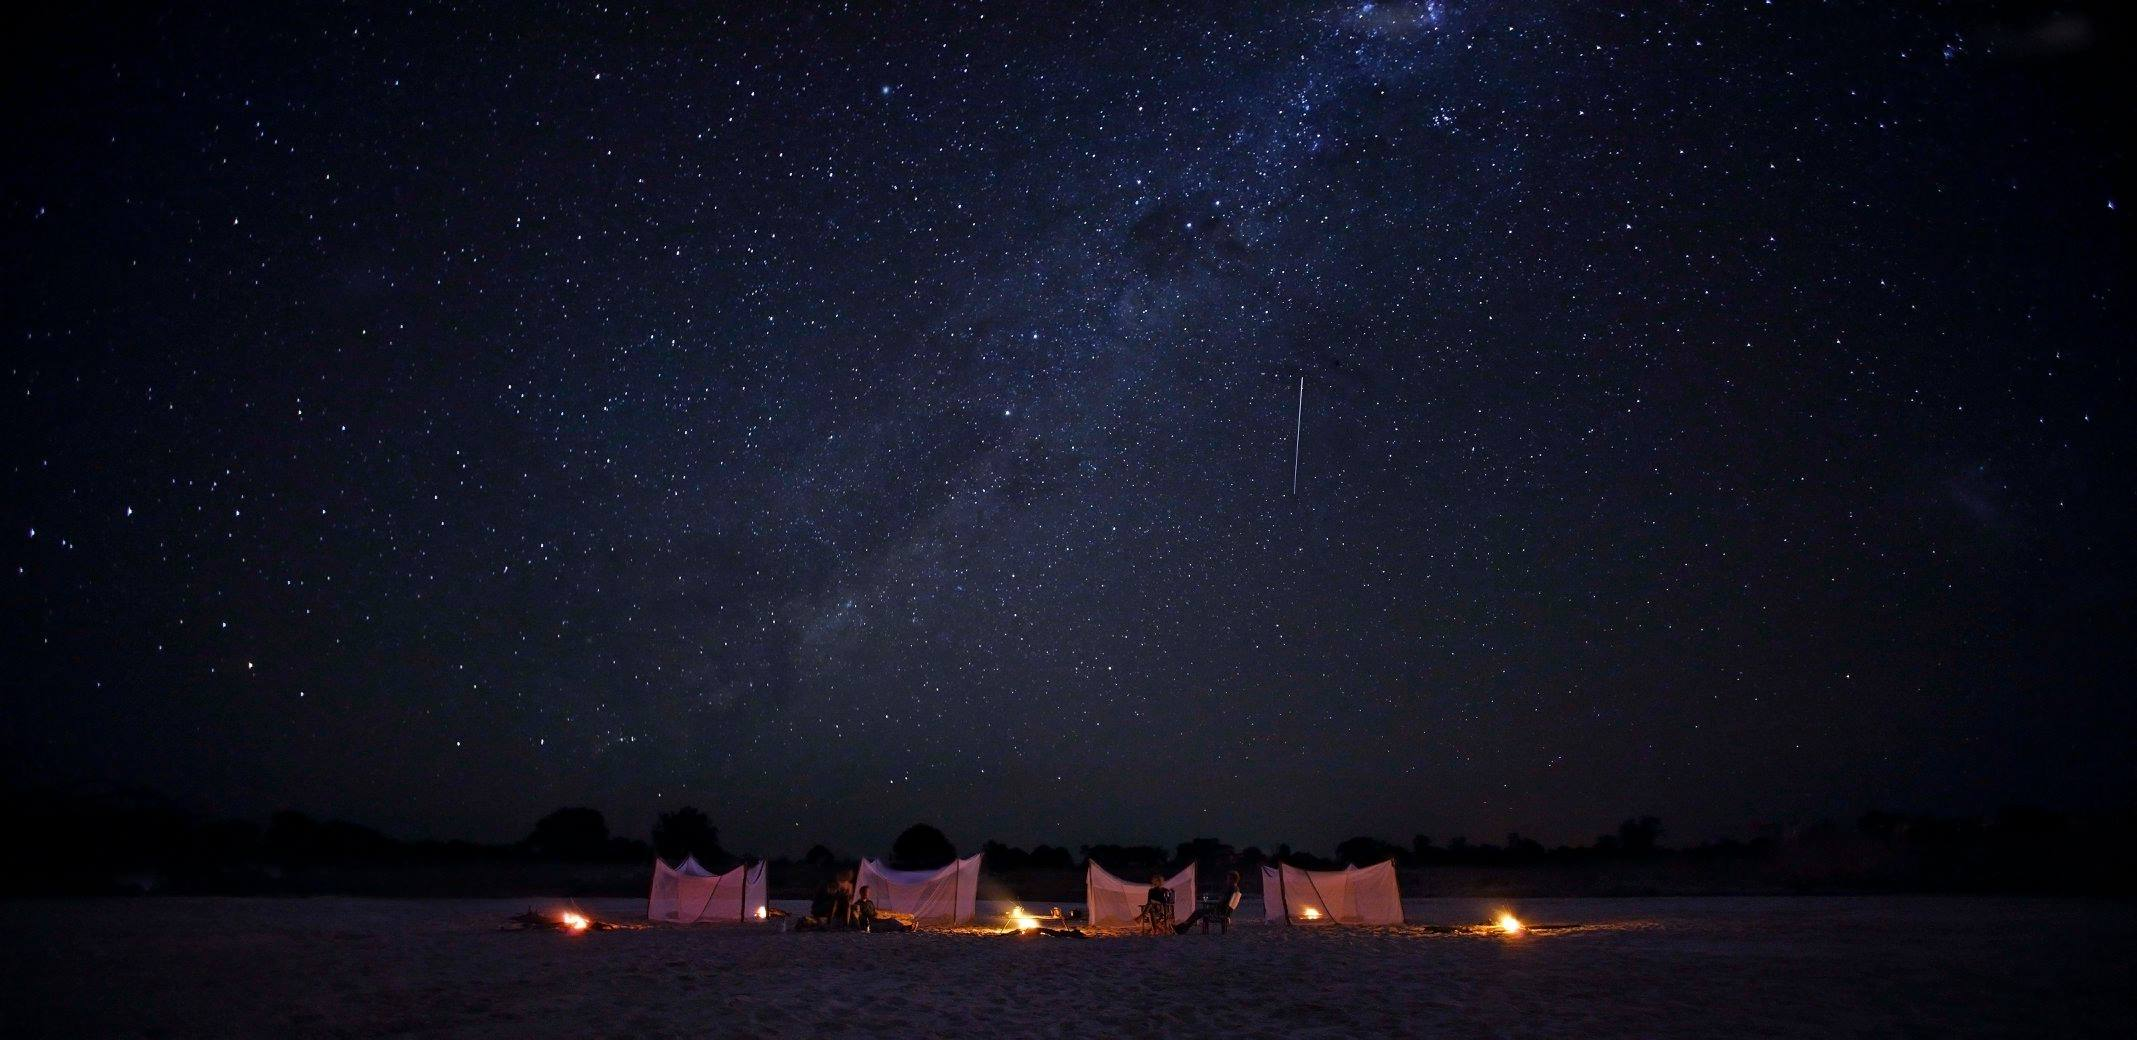 sleep out/fly camp with 4 tents under the stars at luwi plains